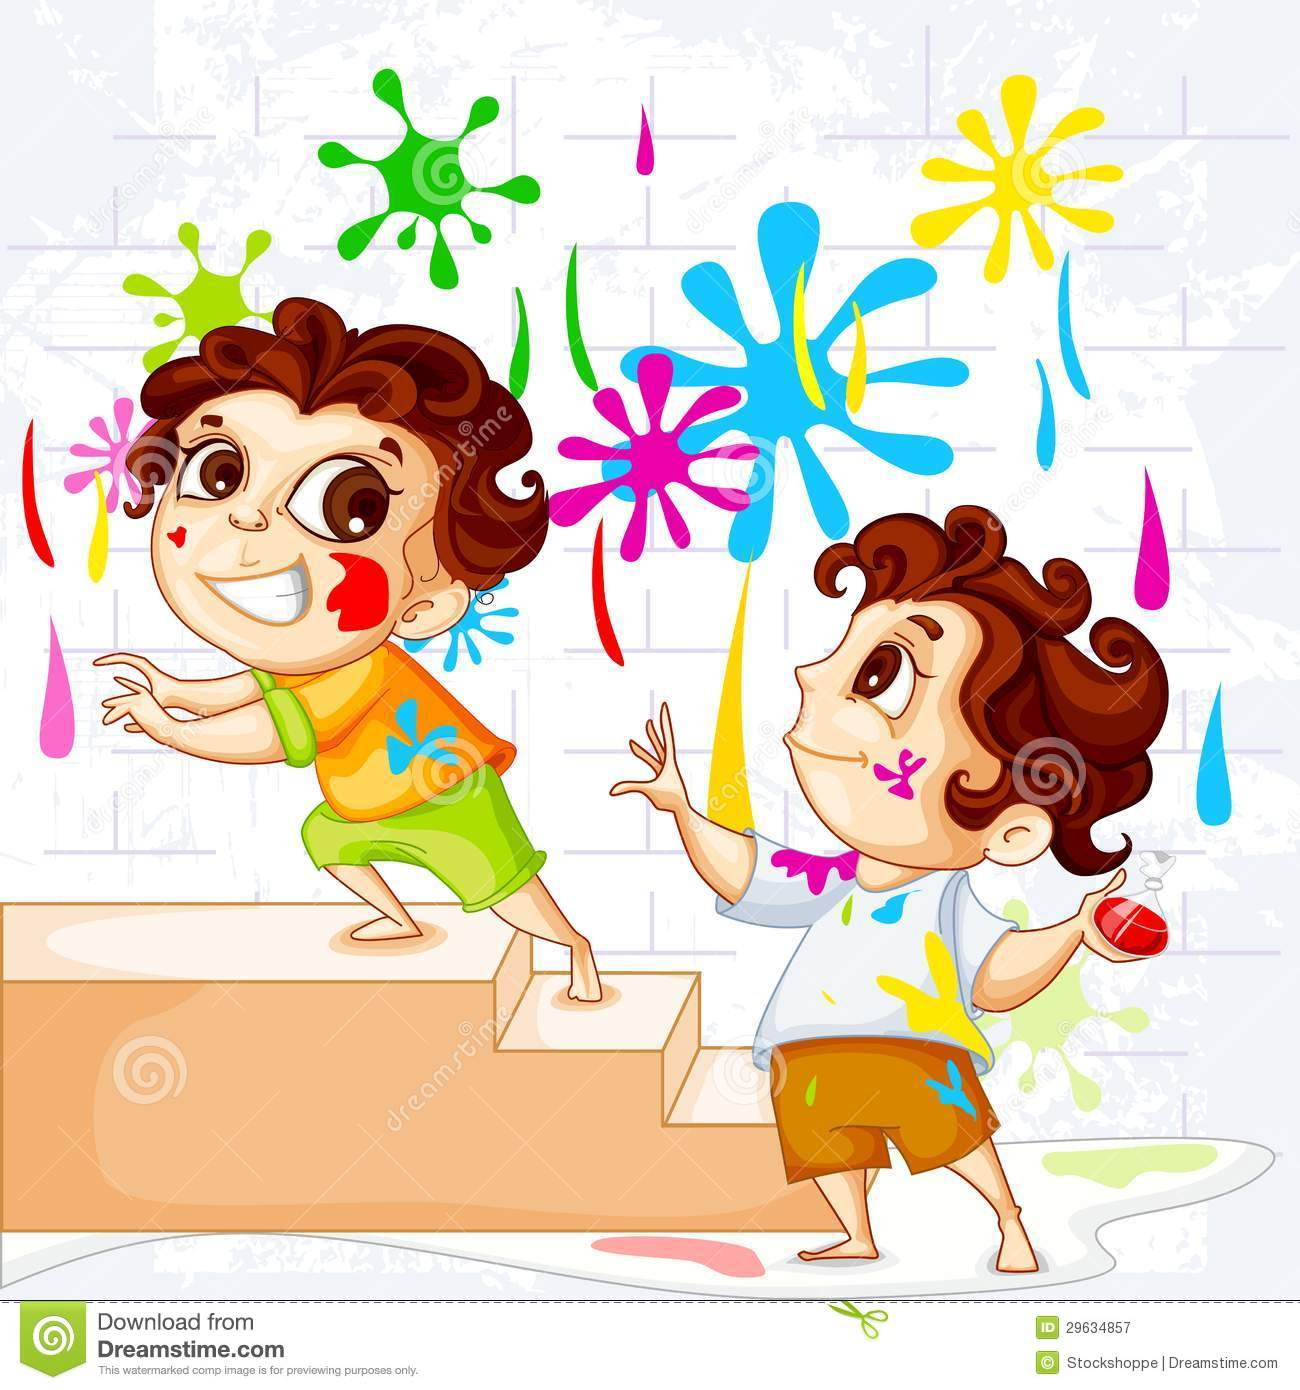 Colouring pages holi - Kids Playing Holi Festival Royalty Free Stock Photography Image